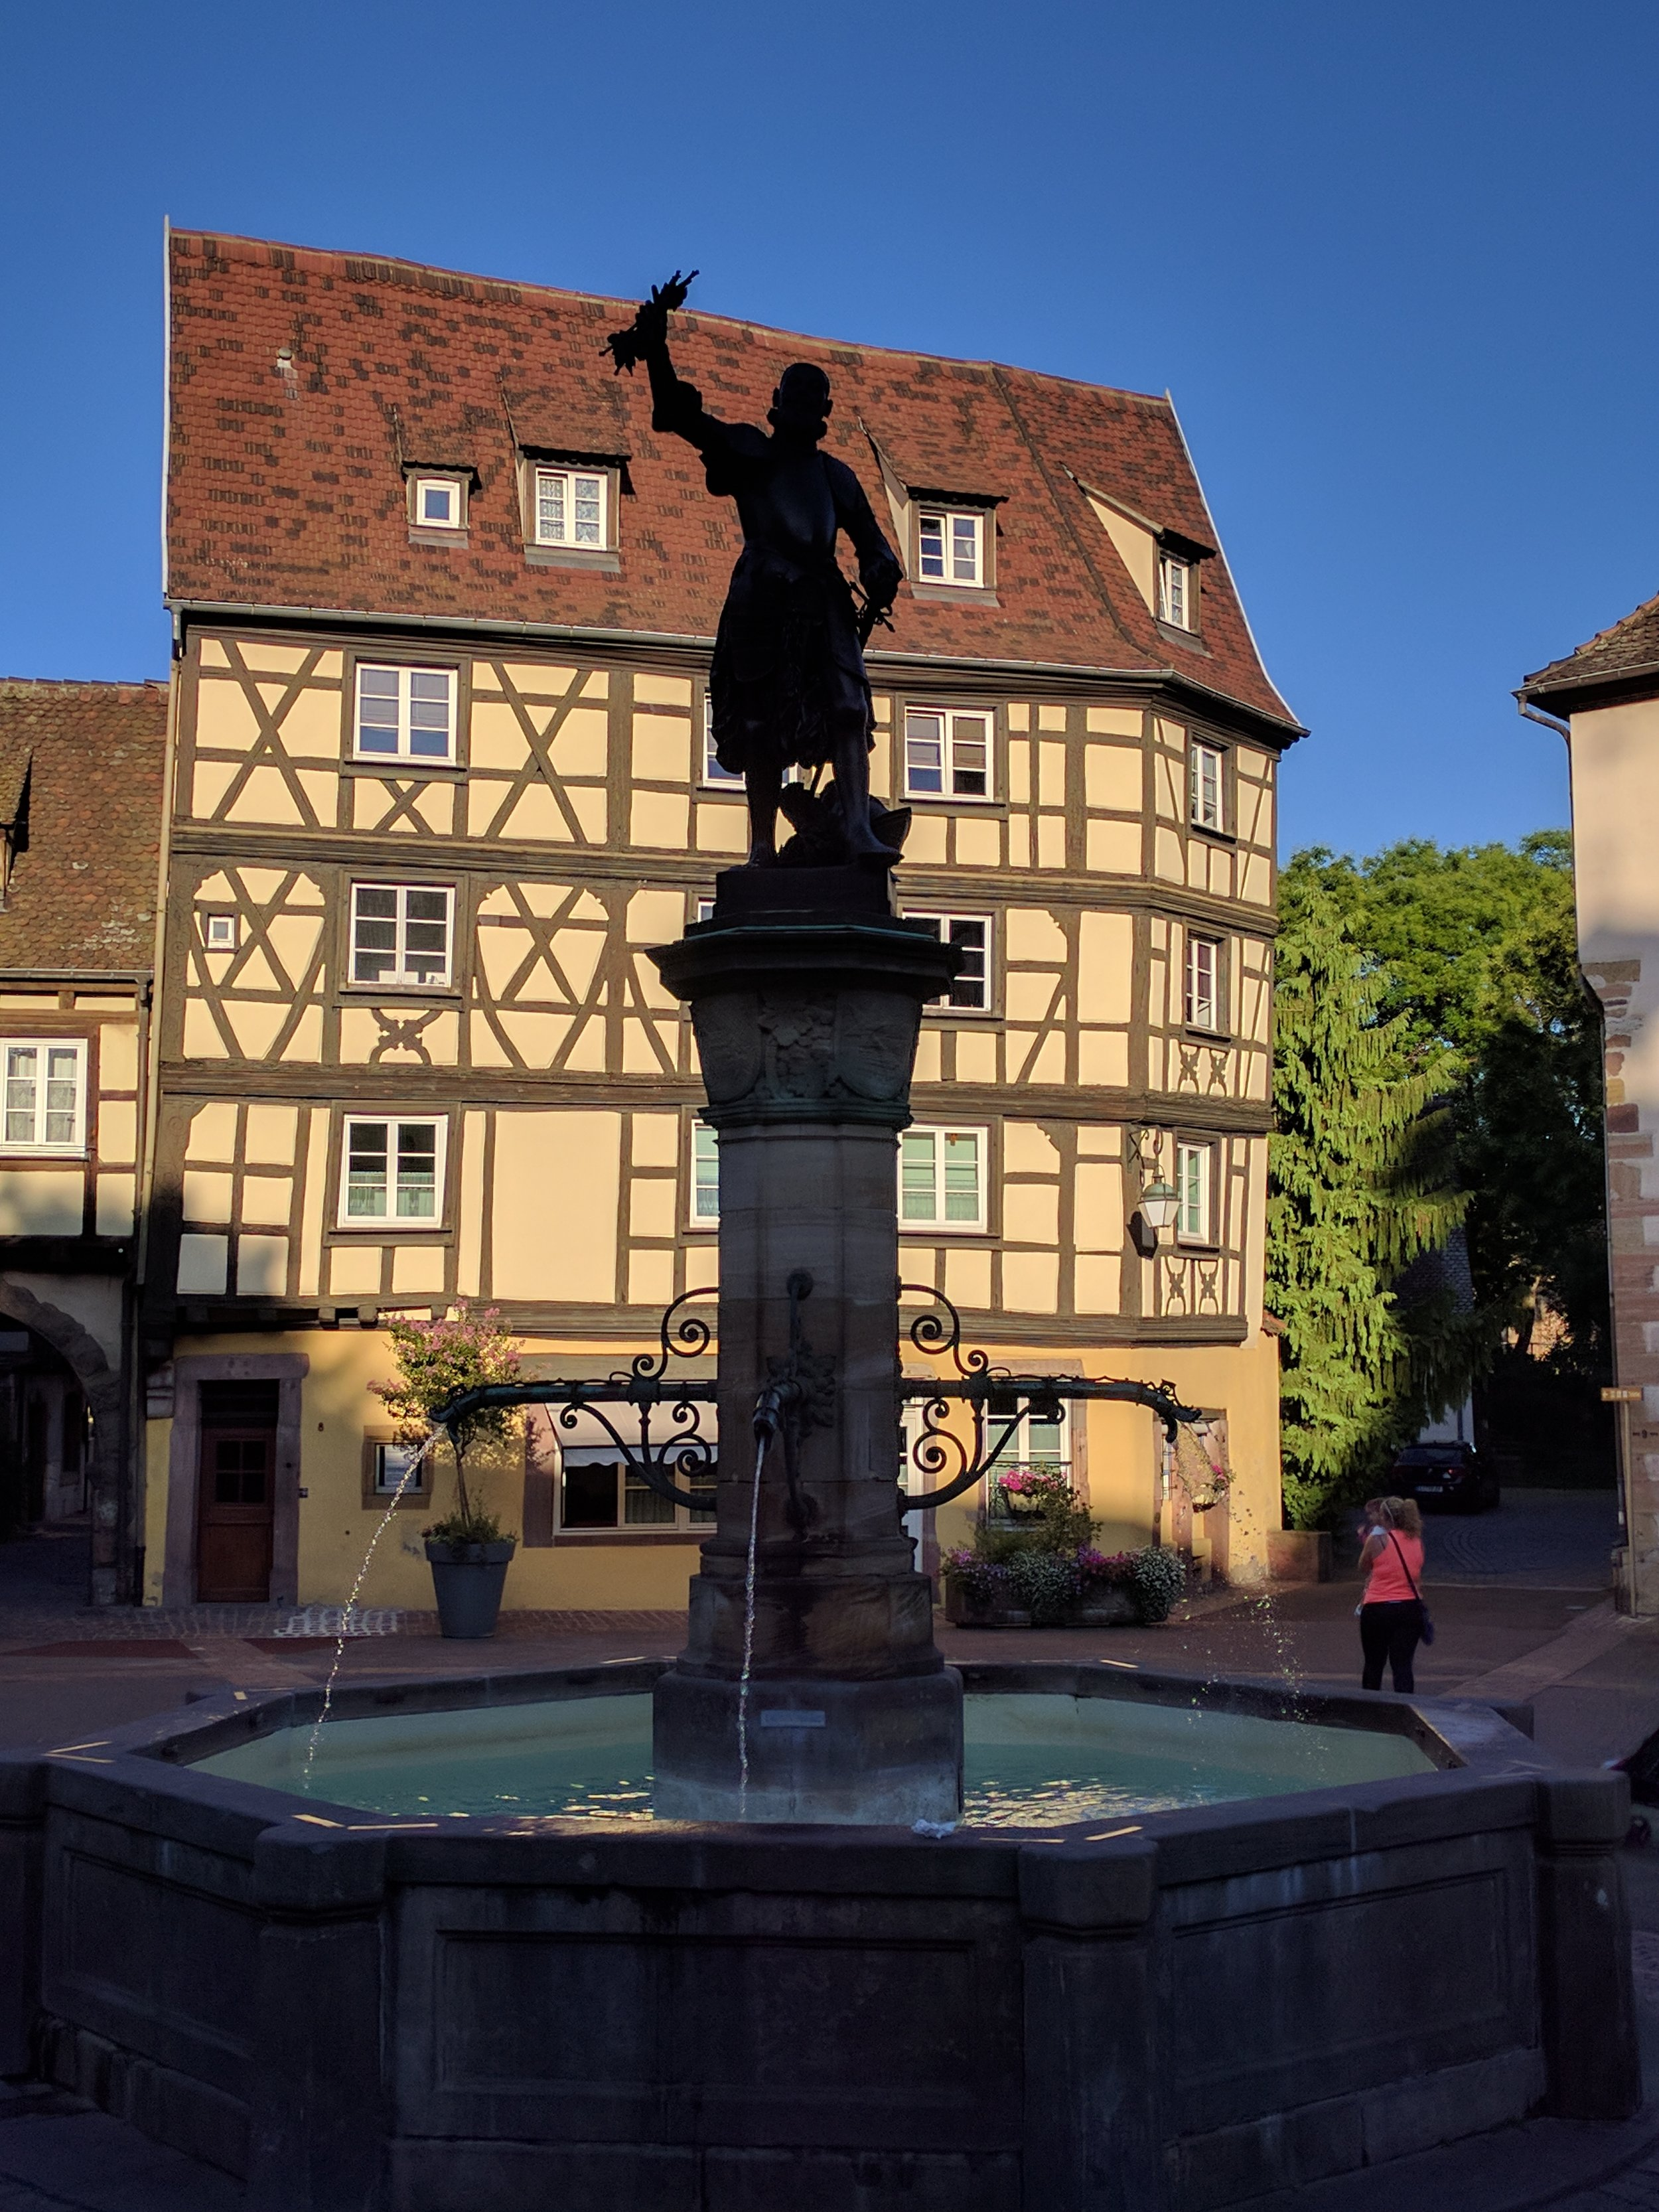 A statute across from the wine hall in Colmar depicting a victorious noble returning from battle in Hungary with Tokay grapes that were subsequently introduced to Alsace (and renamed Pinot Gris); The statue was designed by Frederic Bartholdi -- designer of the Statue of Liberty and native of Colmar